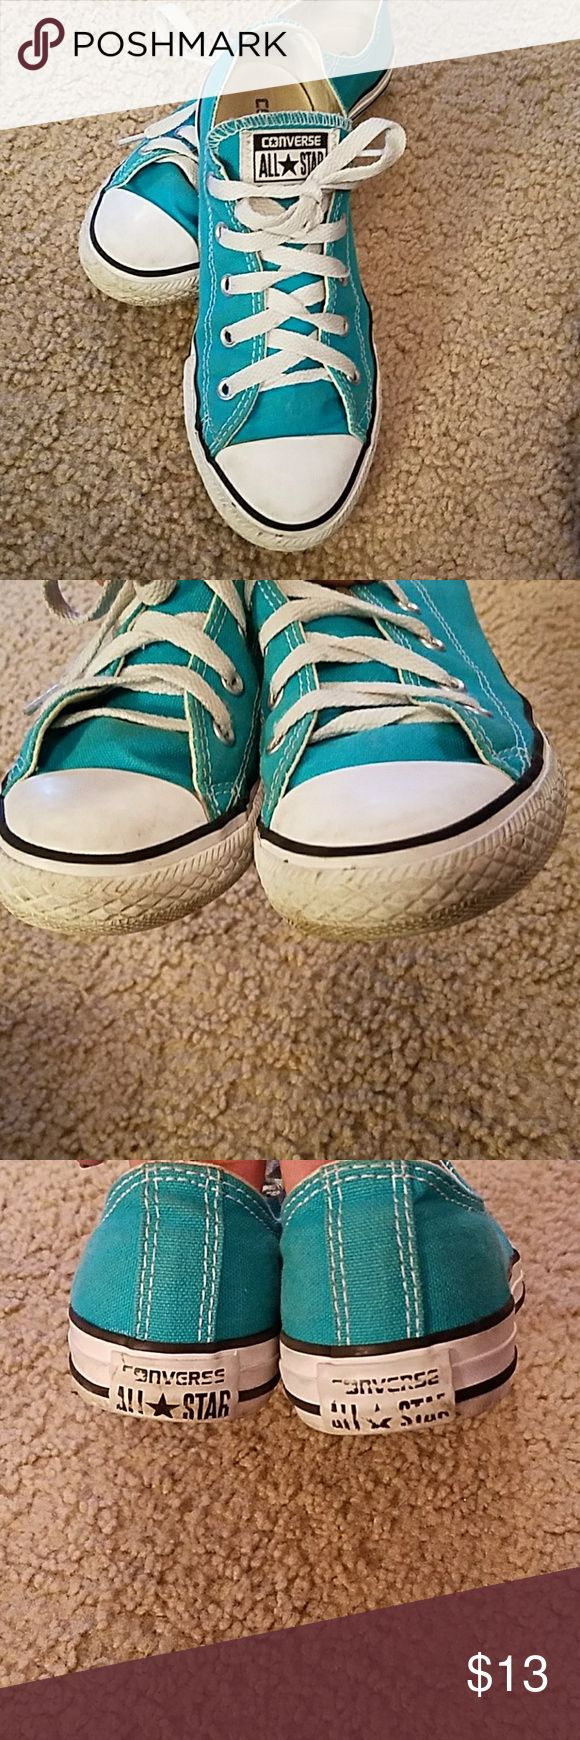 Turquoise Converse Used but still have life. They need a nice scrub around the sole up top and laces washed but they definitely are still able to be worn. Converse Shoes Sneakers